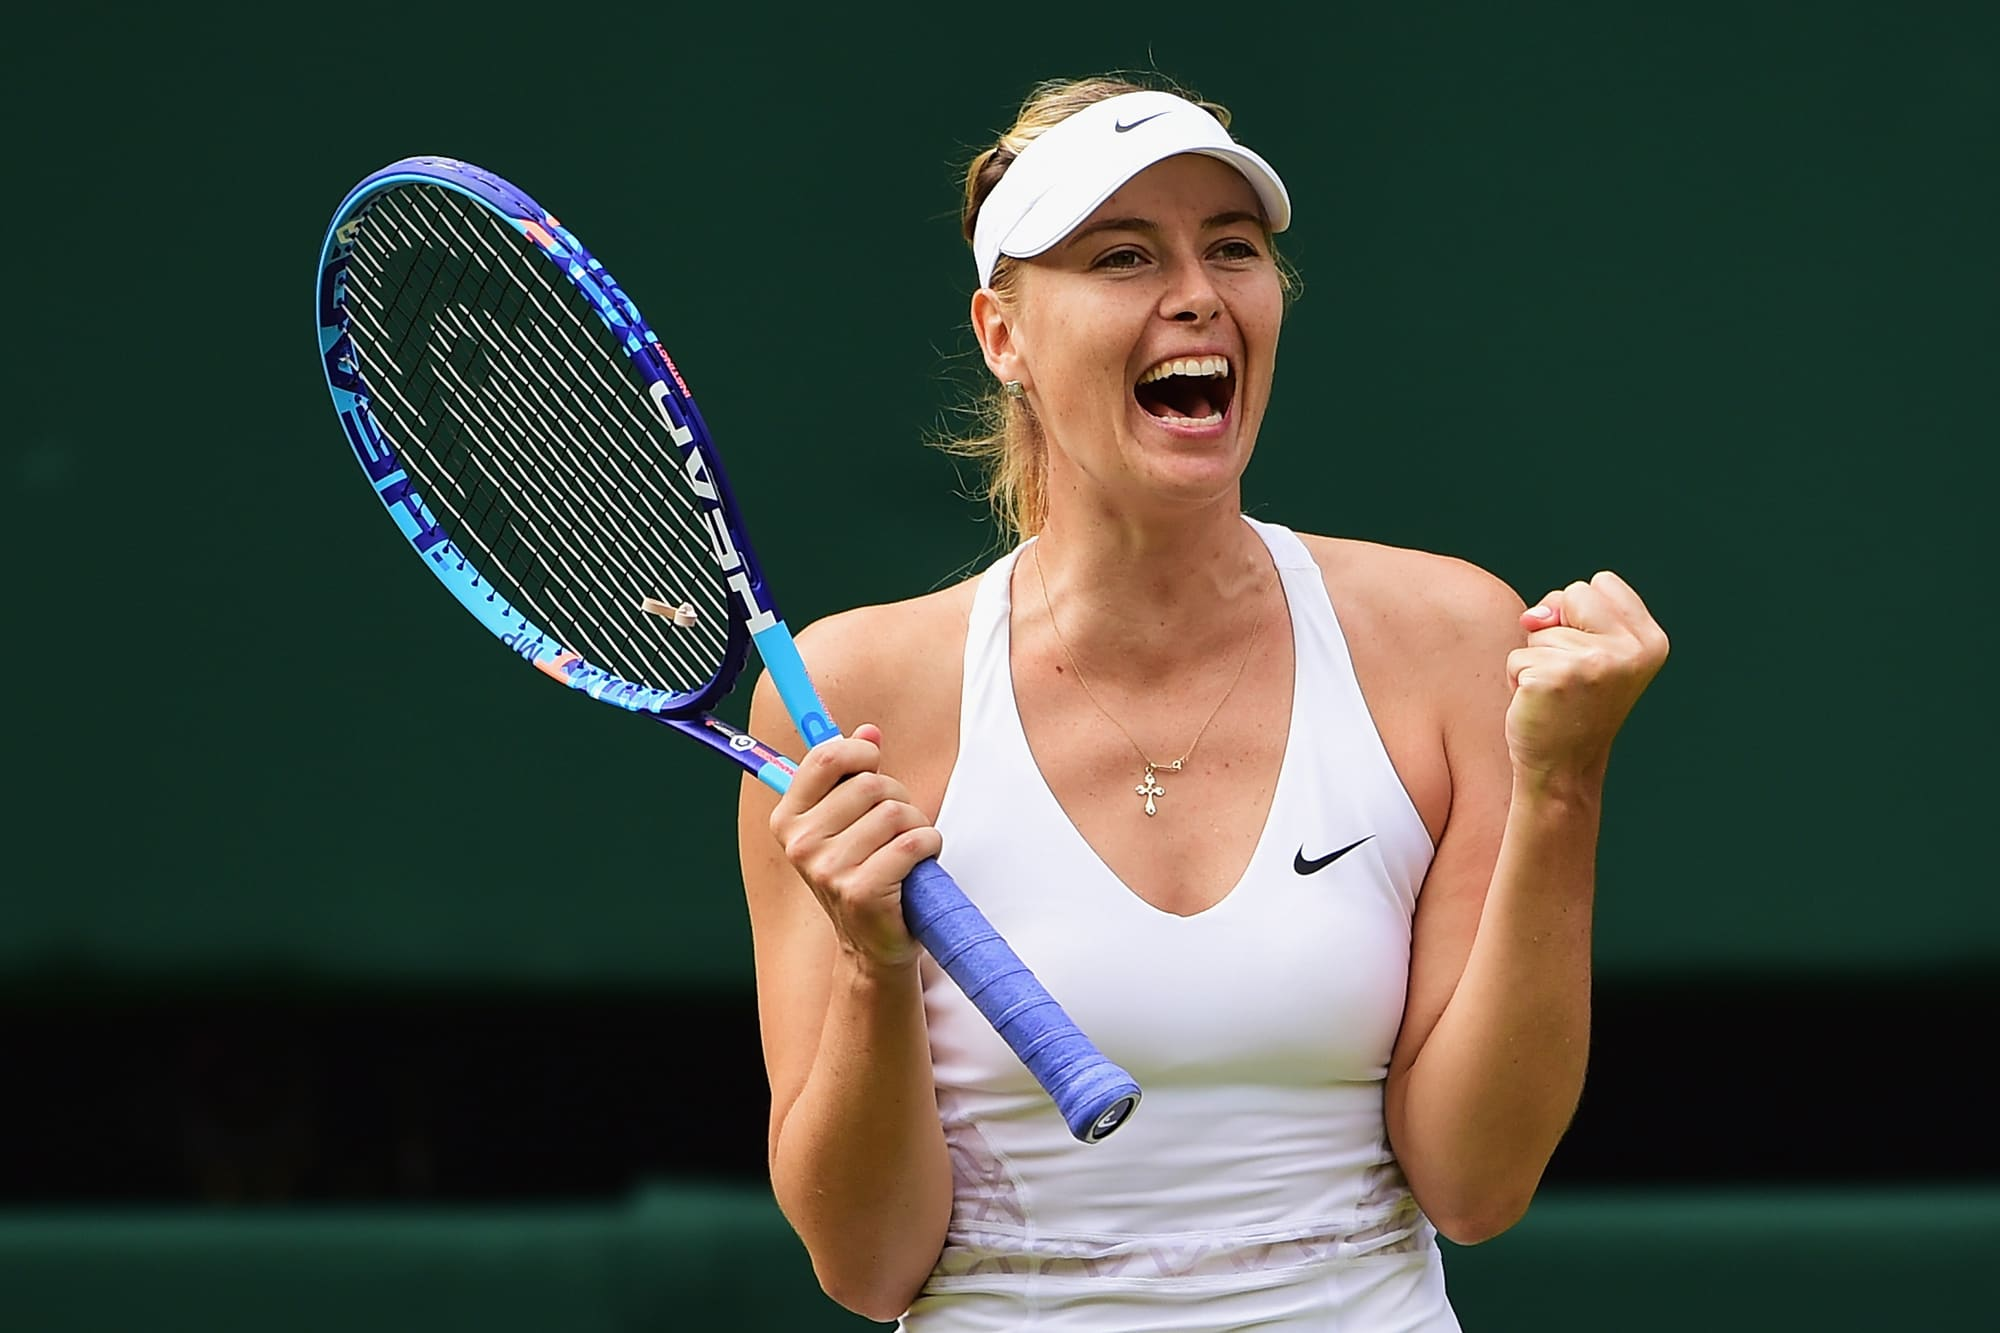 Tennis player Maria Sharapova banned for two years for doping